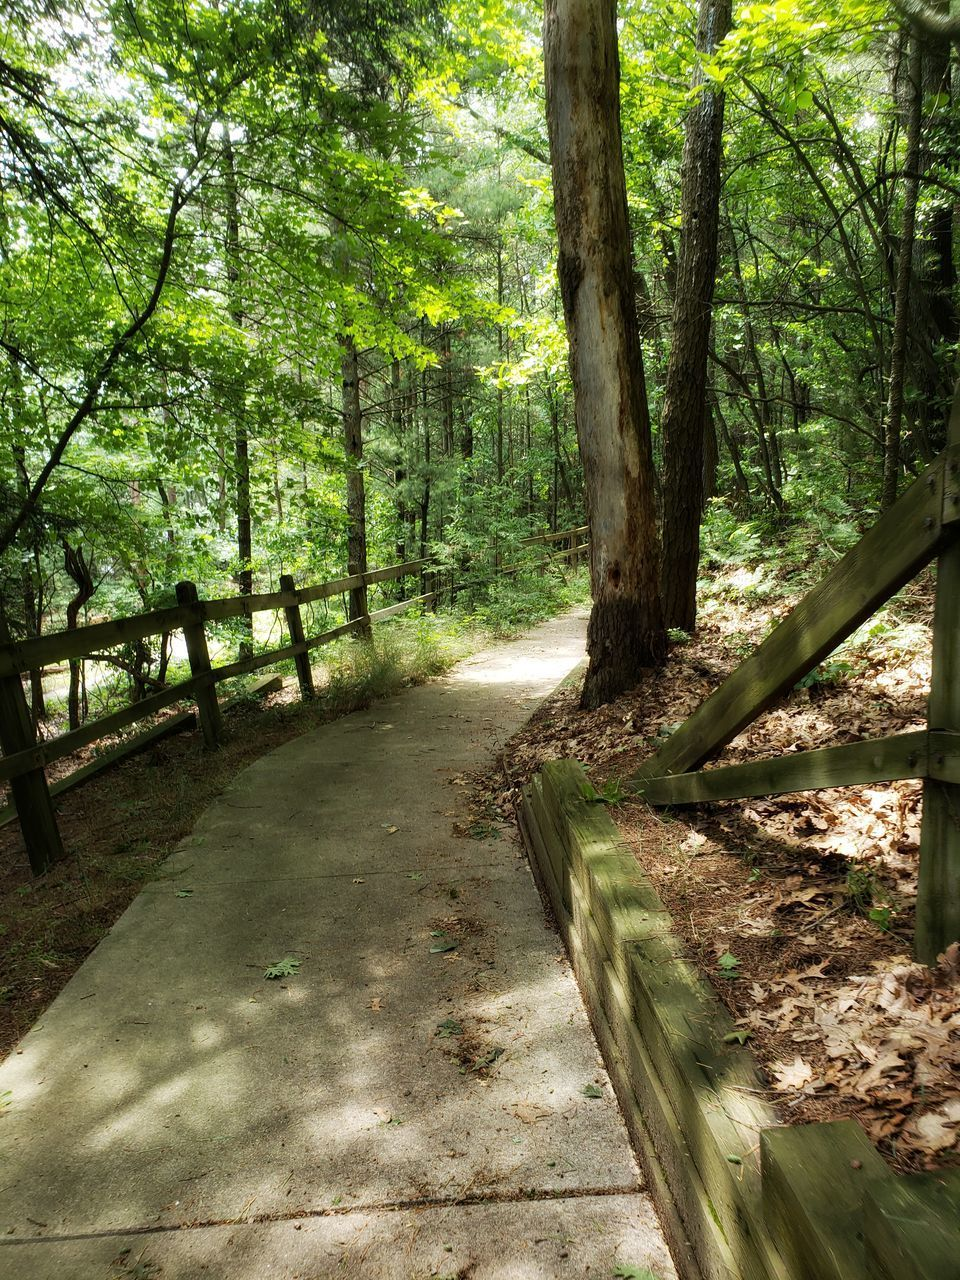 tree, plant, forest, land, direction, the way forward, nature, beauty in nature, trunk, tree trunk, footpath, growth, tranquility, tranquil scene, woodland, no people, day, scenics - nature, sunlight, green color, outdoors, diminishing perspective, wood, trail